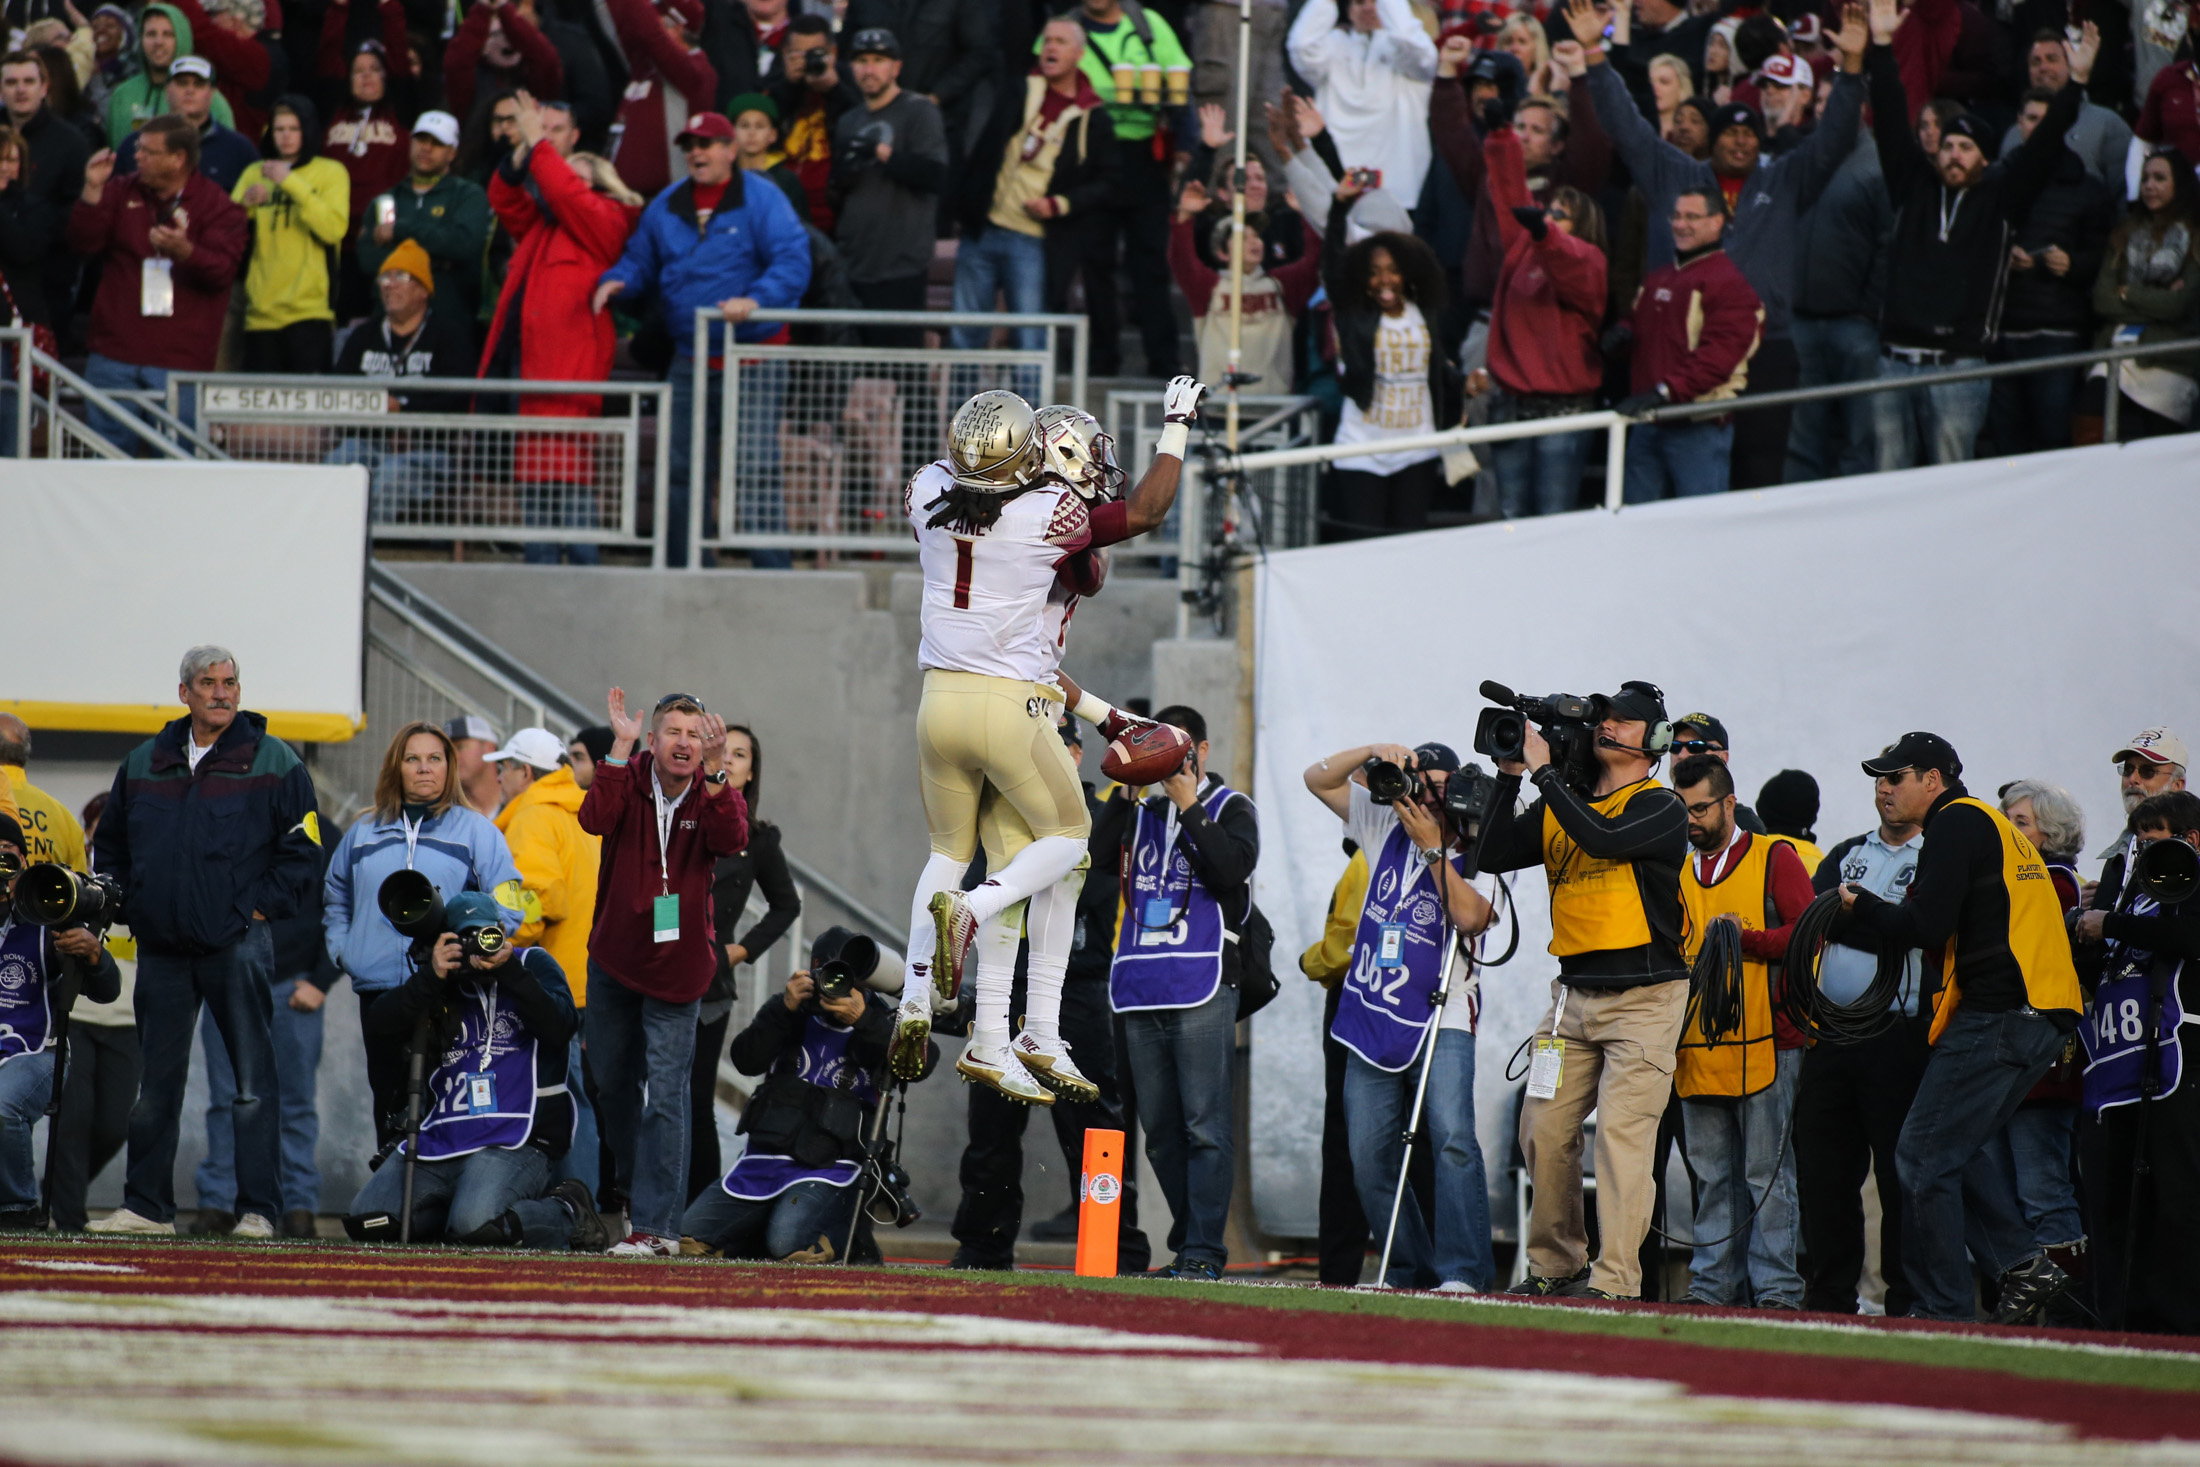 Florida State vs Oregon Ducks at the Rose Bowl in College Football Playoff - Touchdown